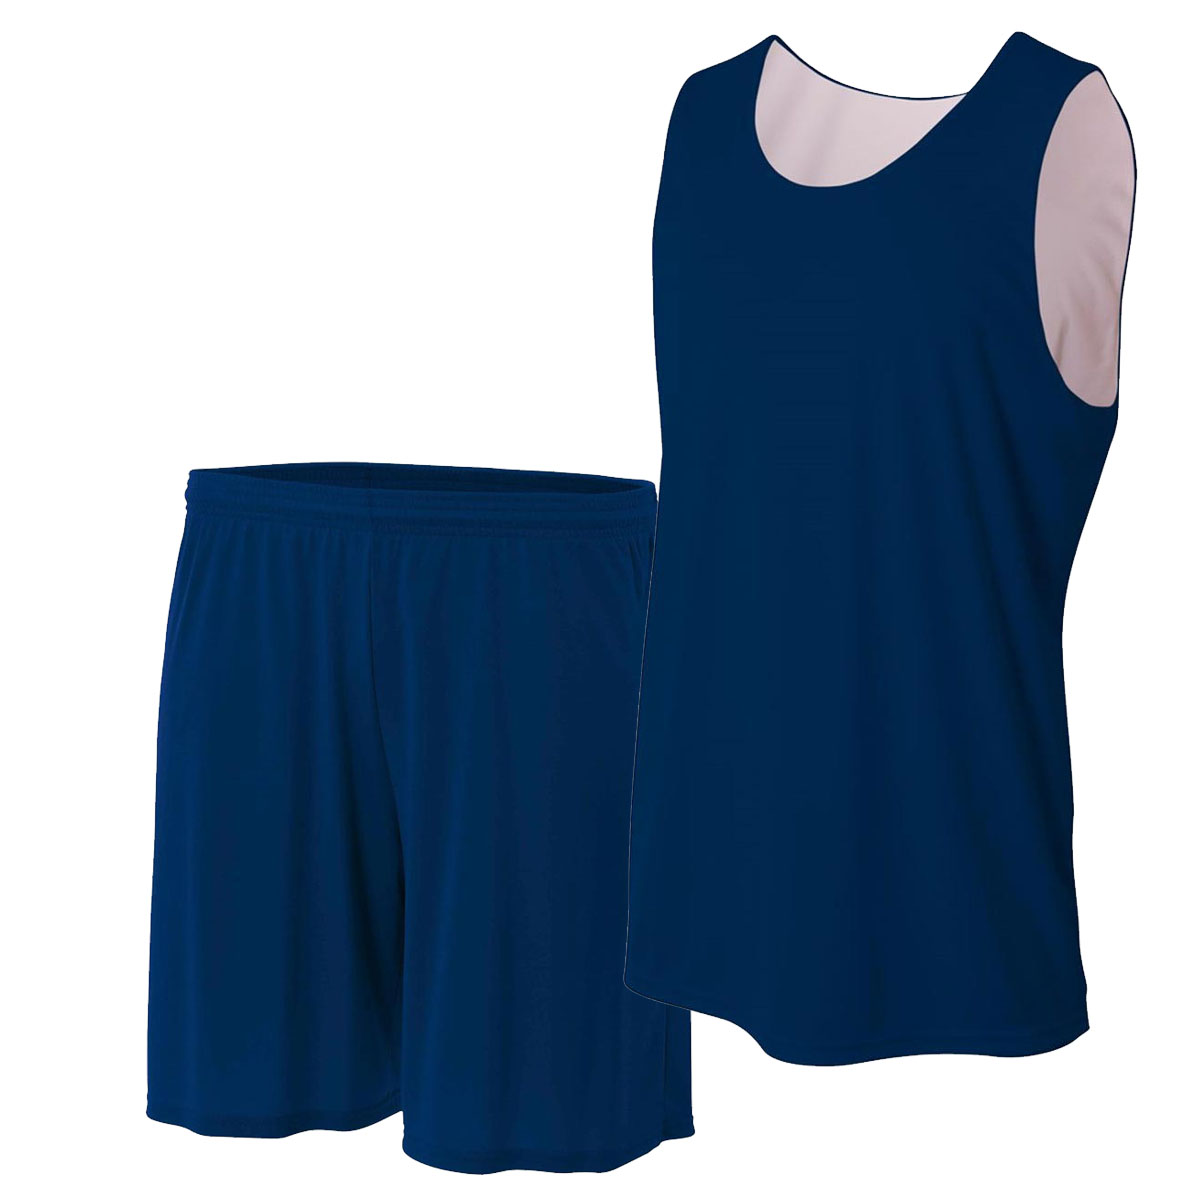 Reversible Basketball Uniforms Manufacturers in Meerut